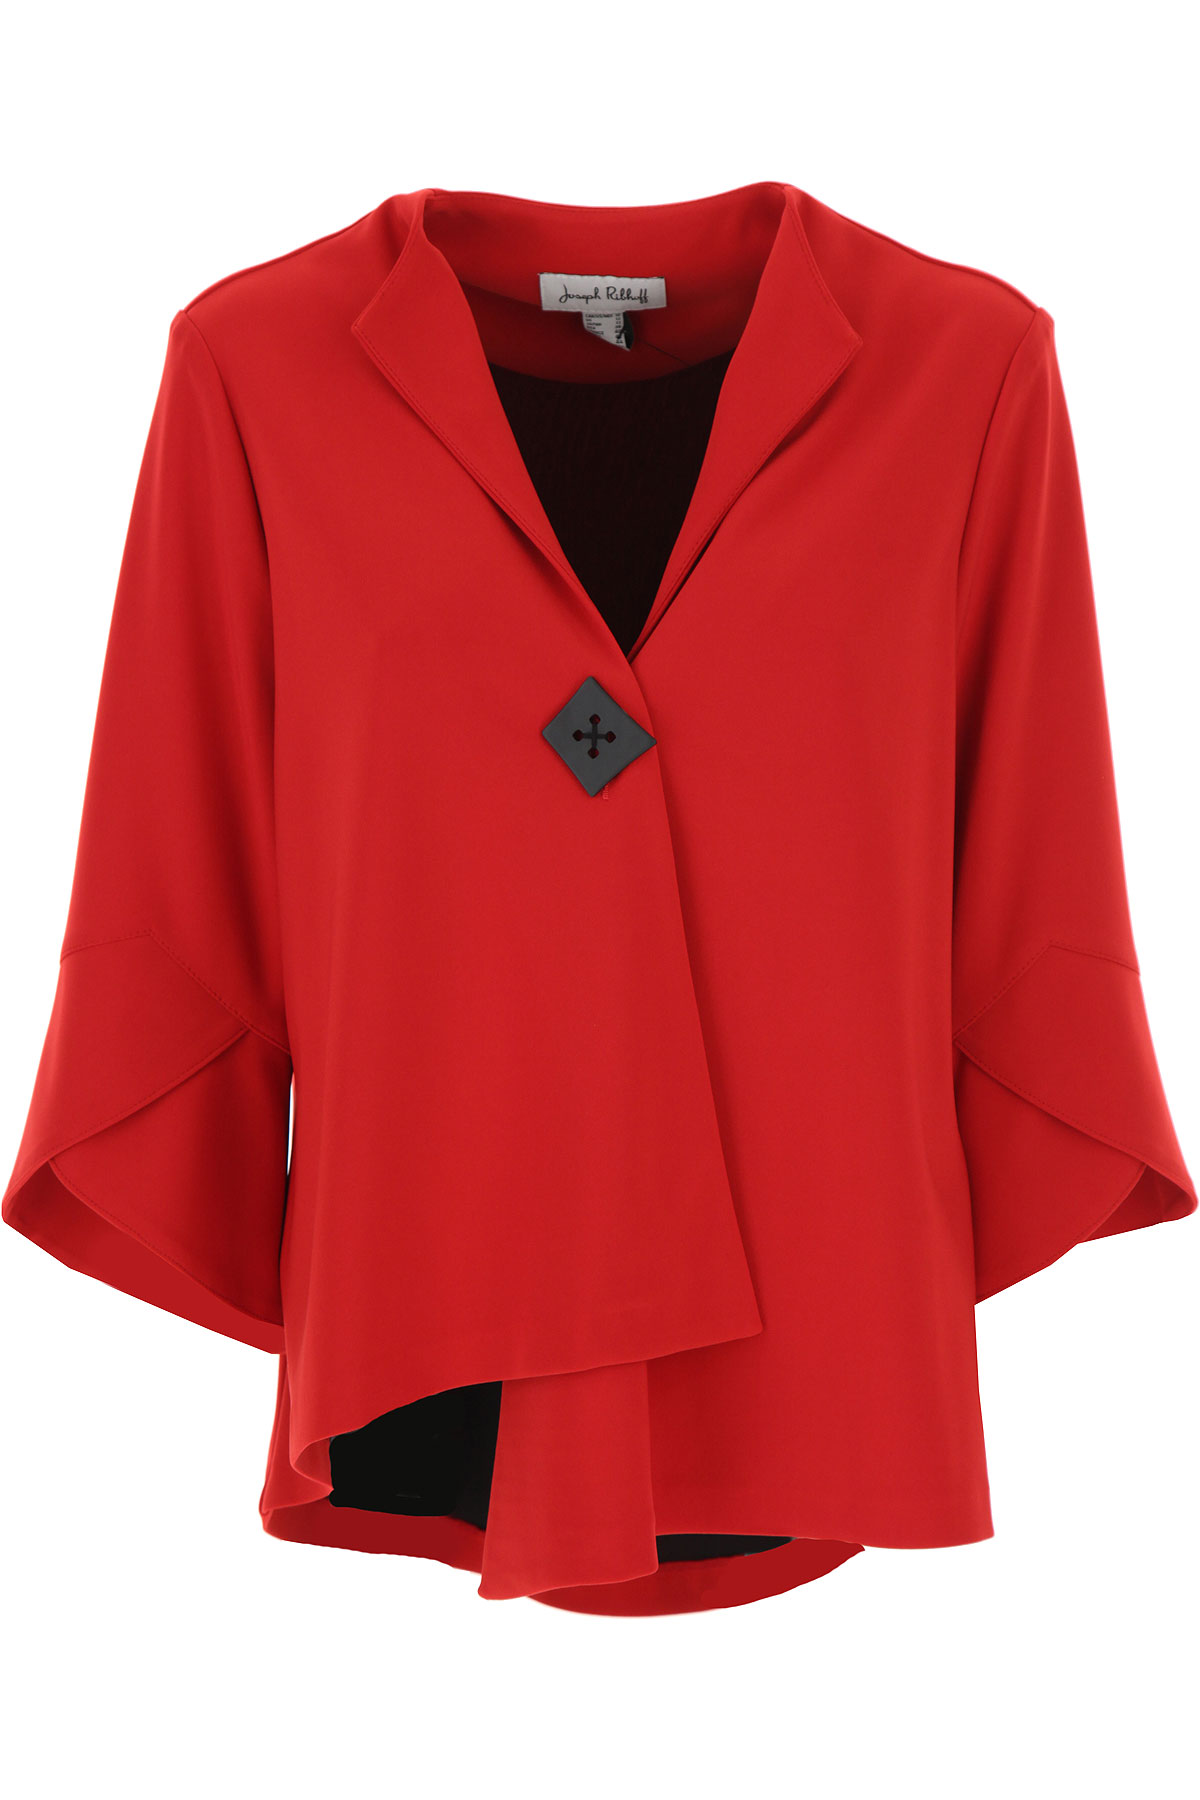 Joseph Ribkoff Jacket for Women On Sale, Lipstick Red, polyester, 2019, 10 12 14 8